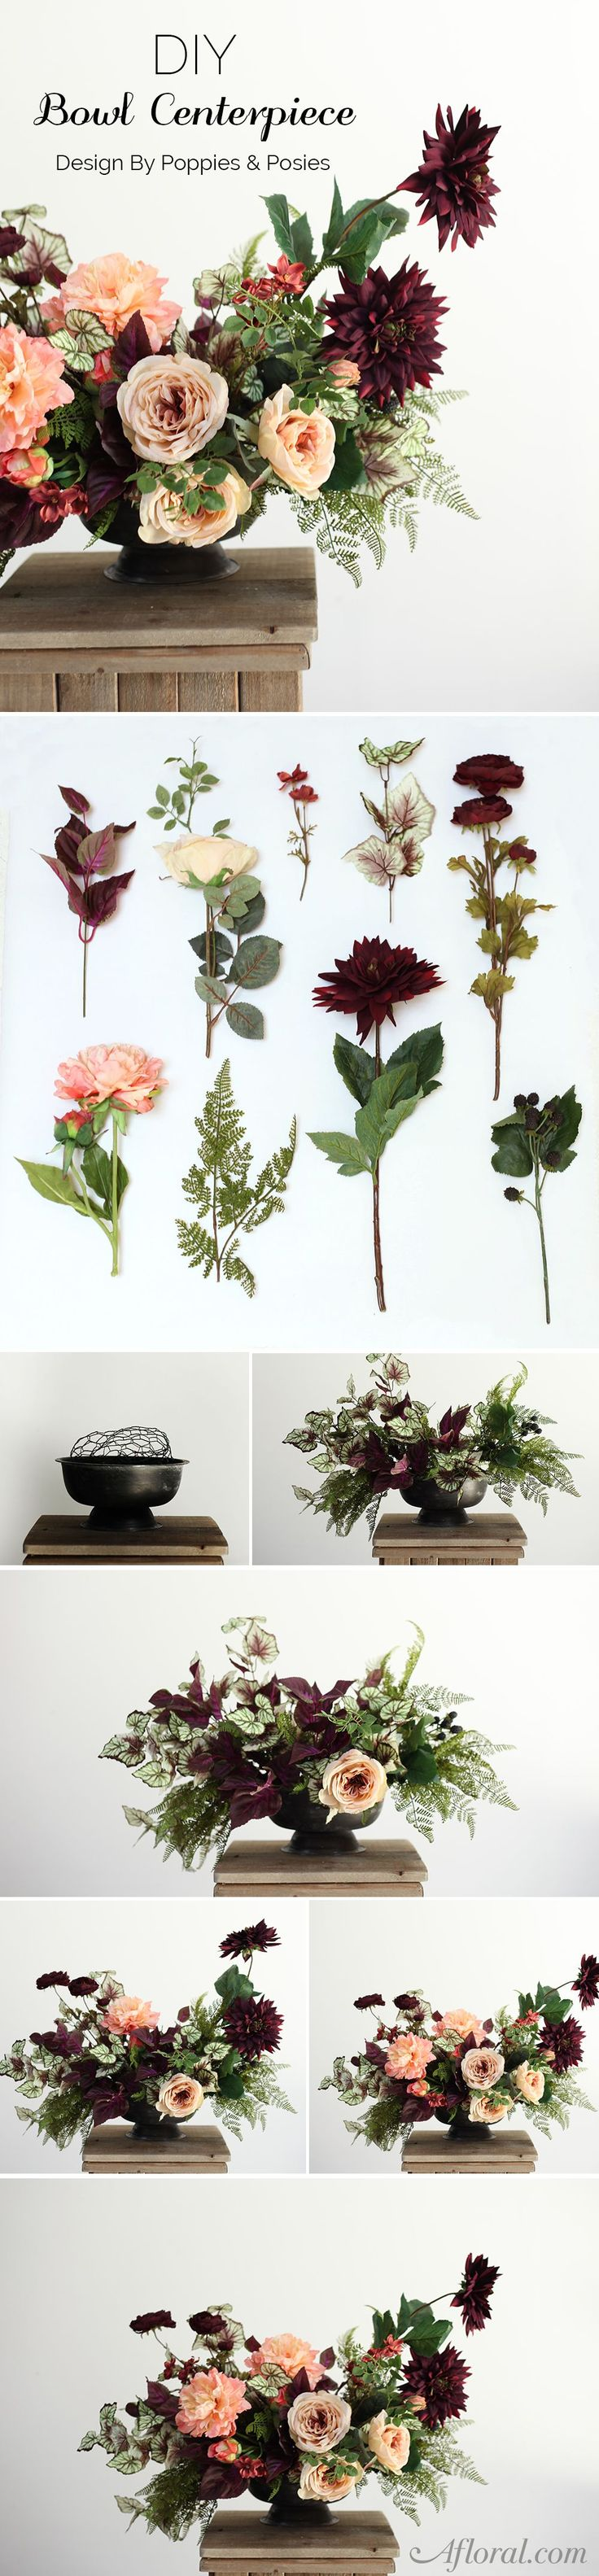 Learn how to make a bowl centerpiece with faux flowers from afloral.com with this step by step DIY from Poppies and Posies #diywedding